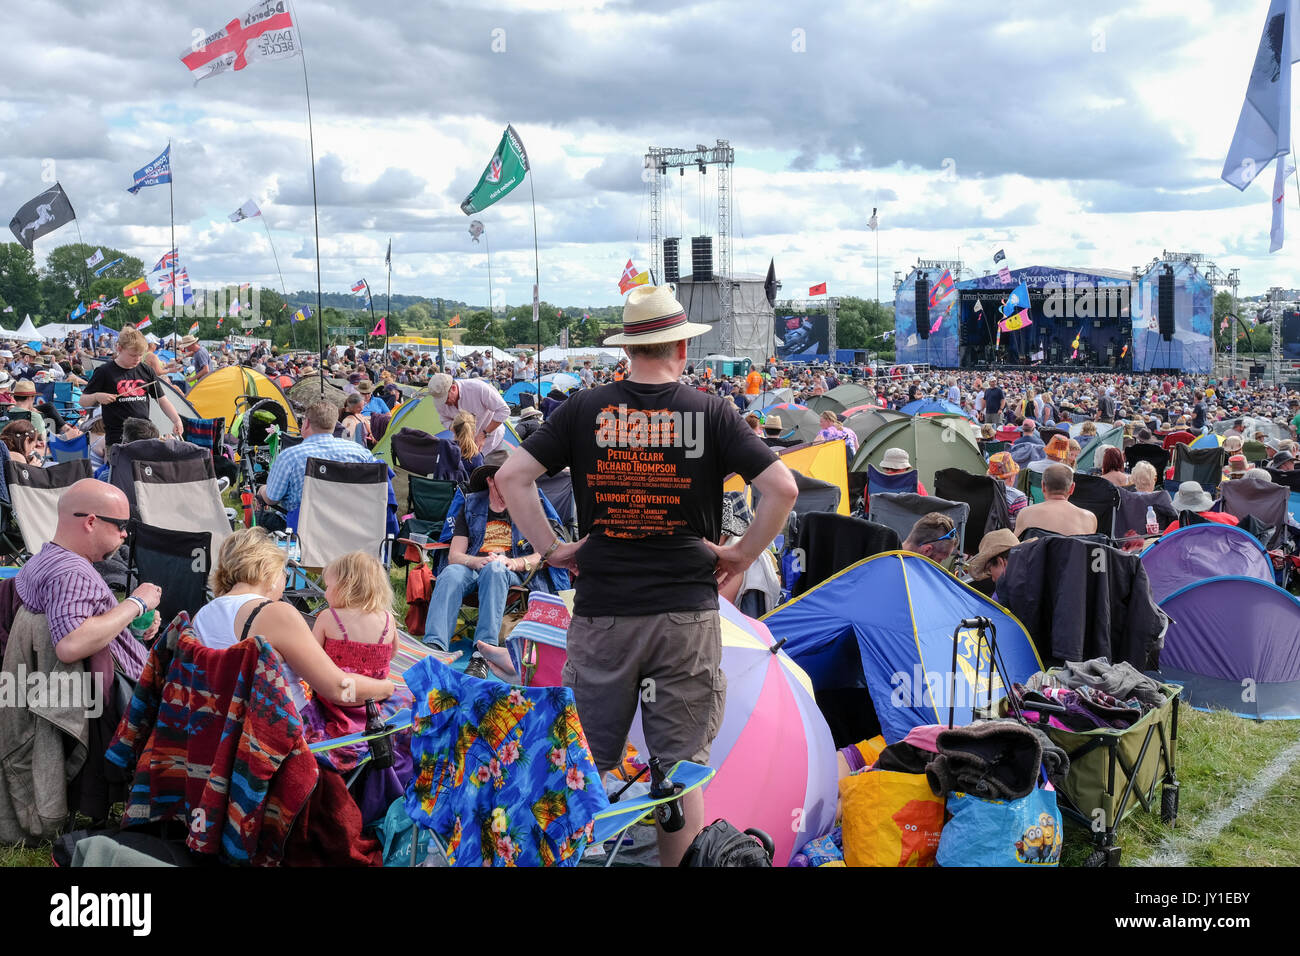 Fairport's Cropredy Convention, Banbury, Oxfordshire, England, August 12, 2017 - Stock Image